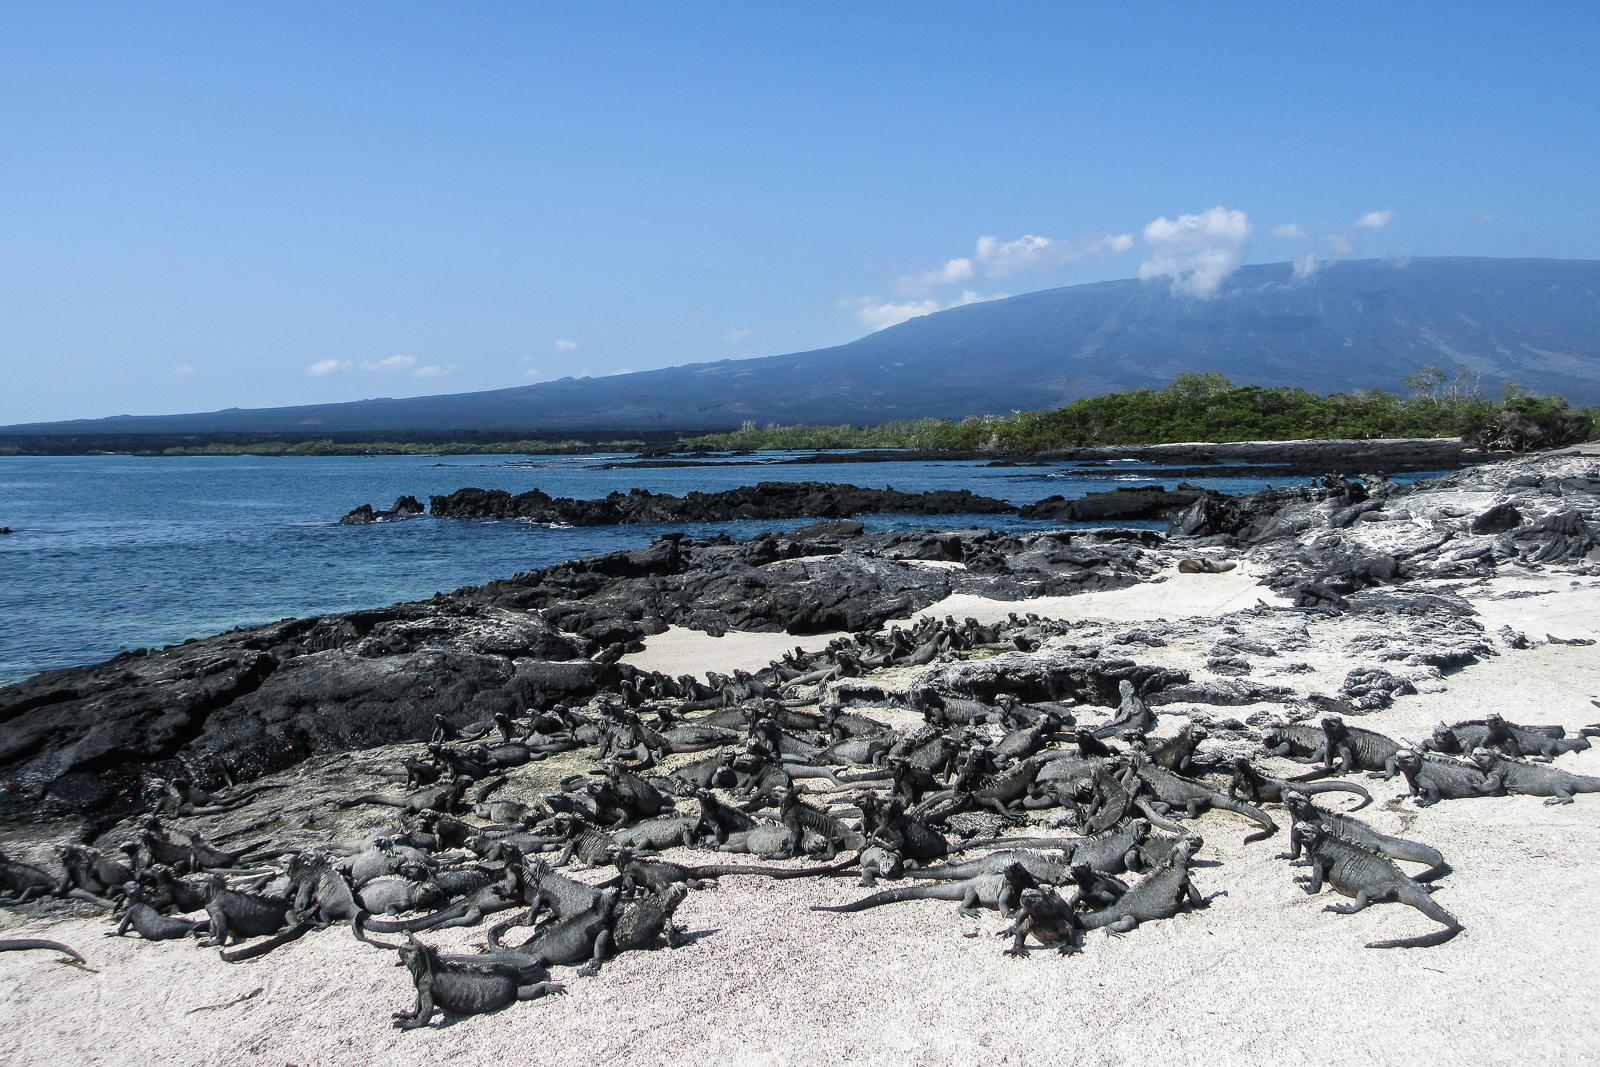 Marine Iguanas on the beach and lava coastline of Punta Espinosa on Fernandina Island Galapagos, from the La Cumbre Volcano pictured in the background